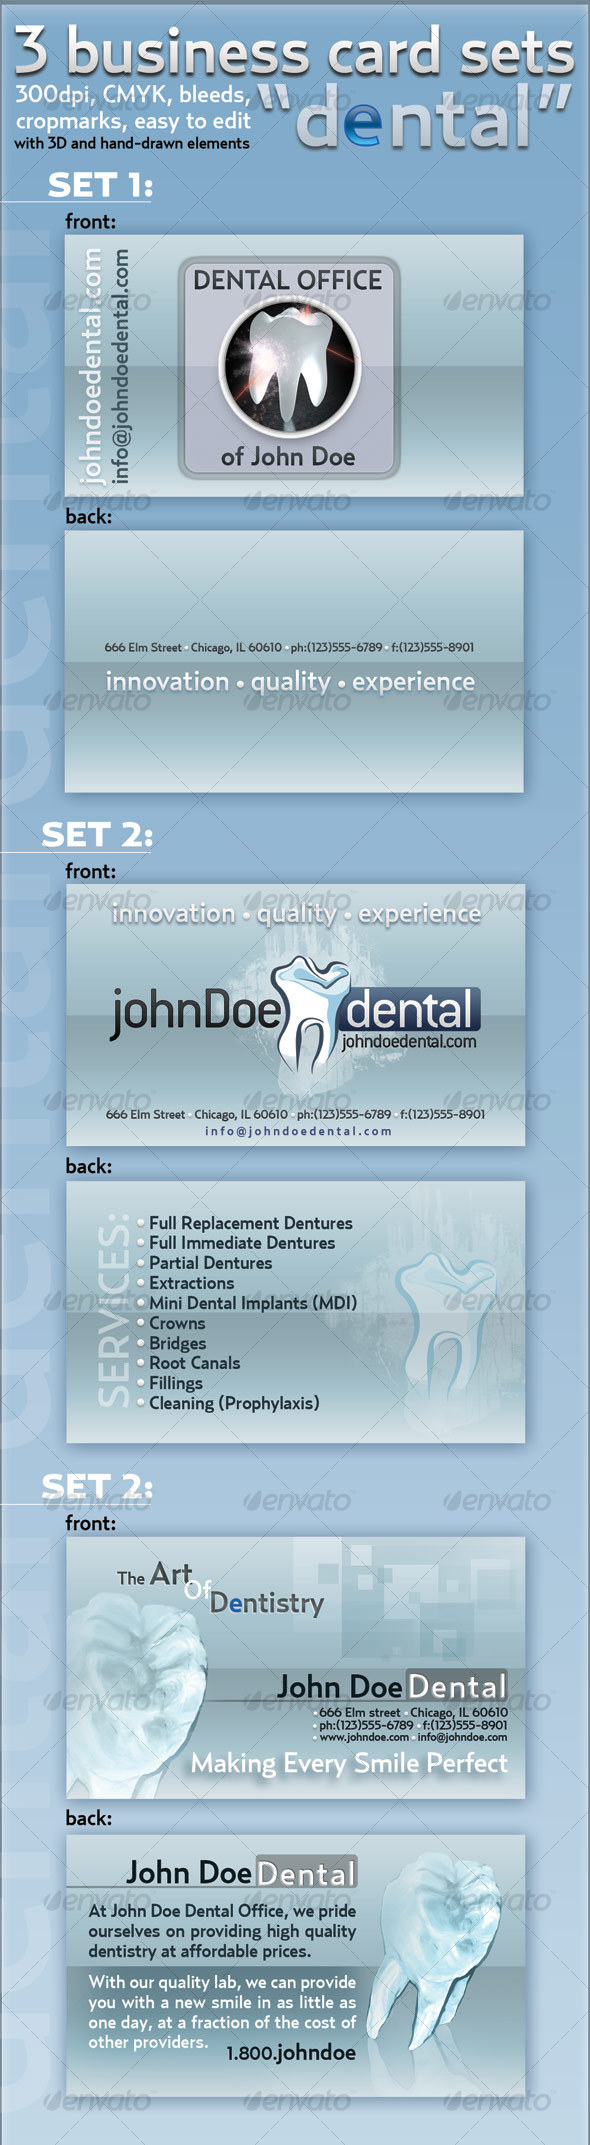 GraphicRiver 3-business card set Dental 109907